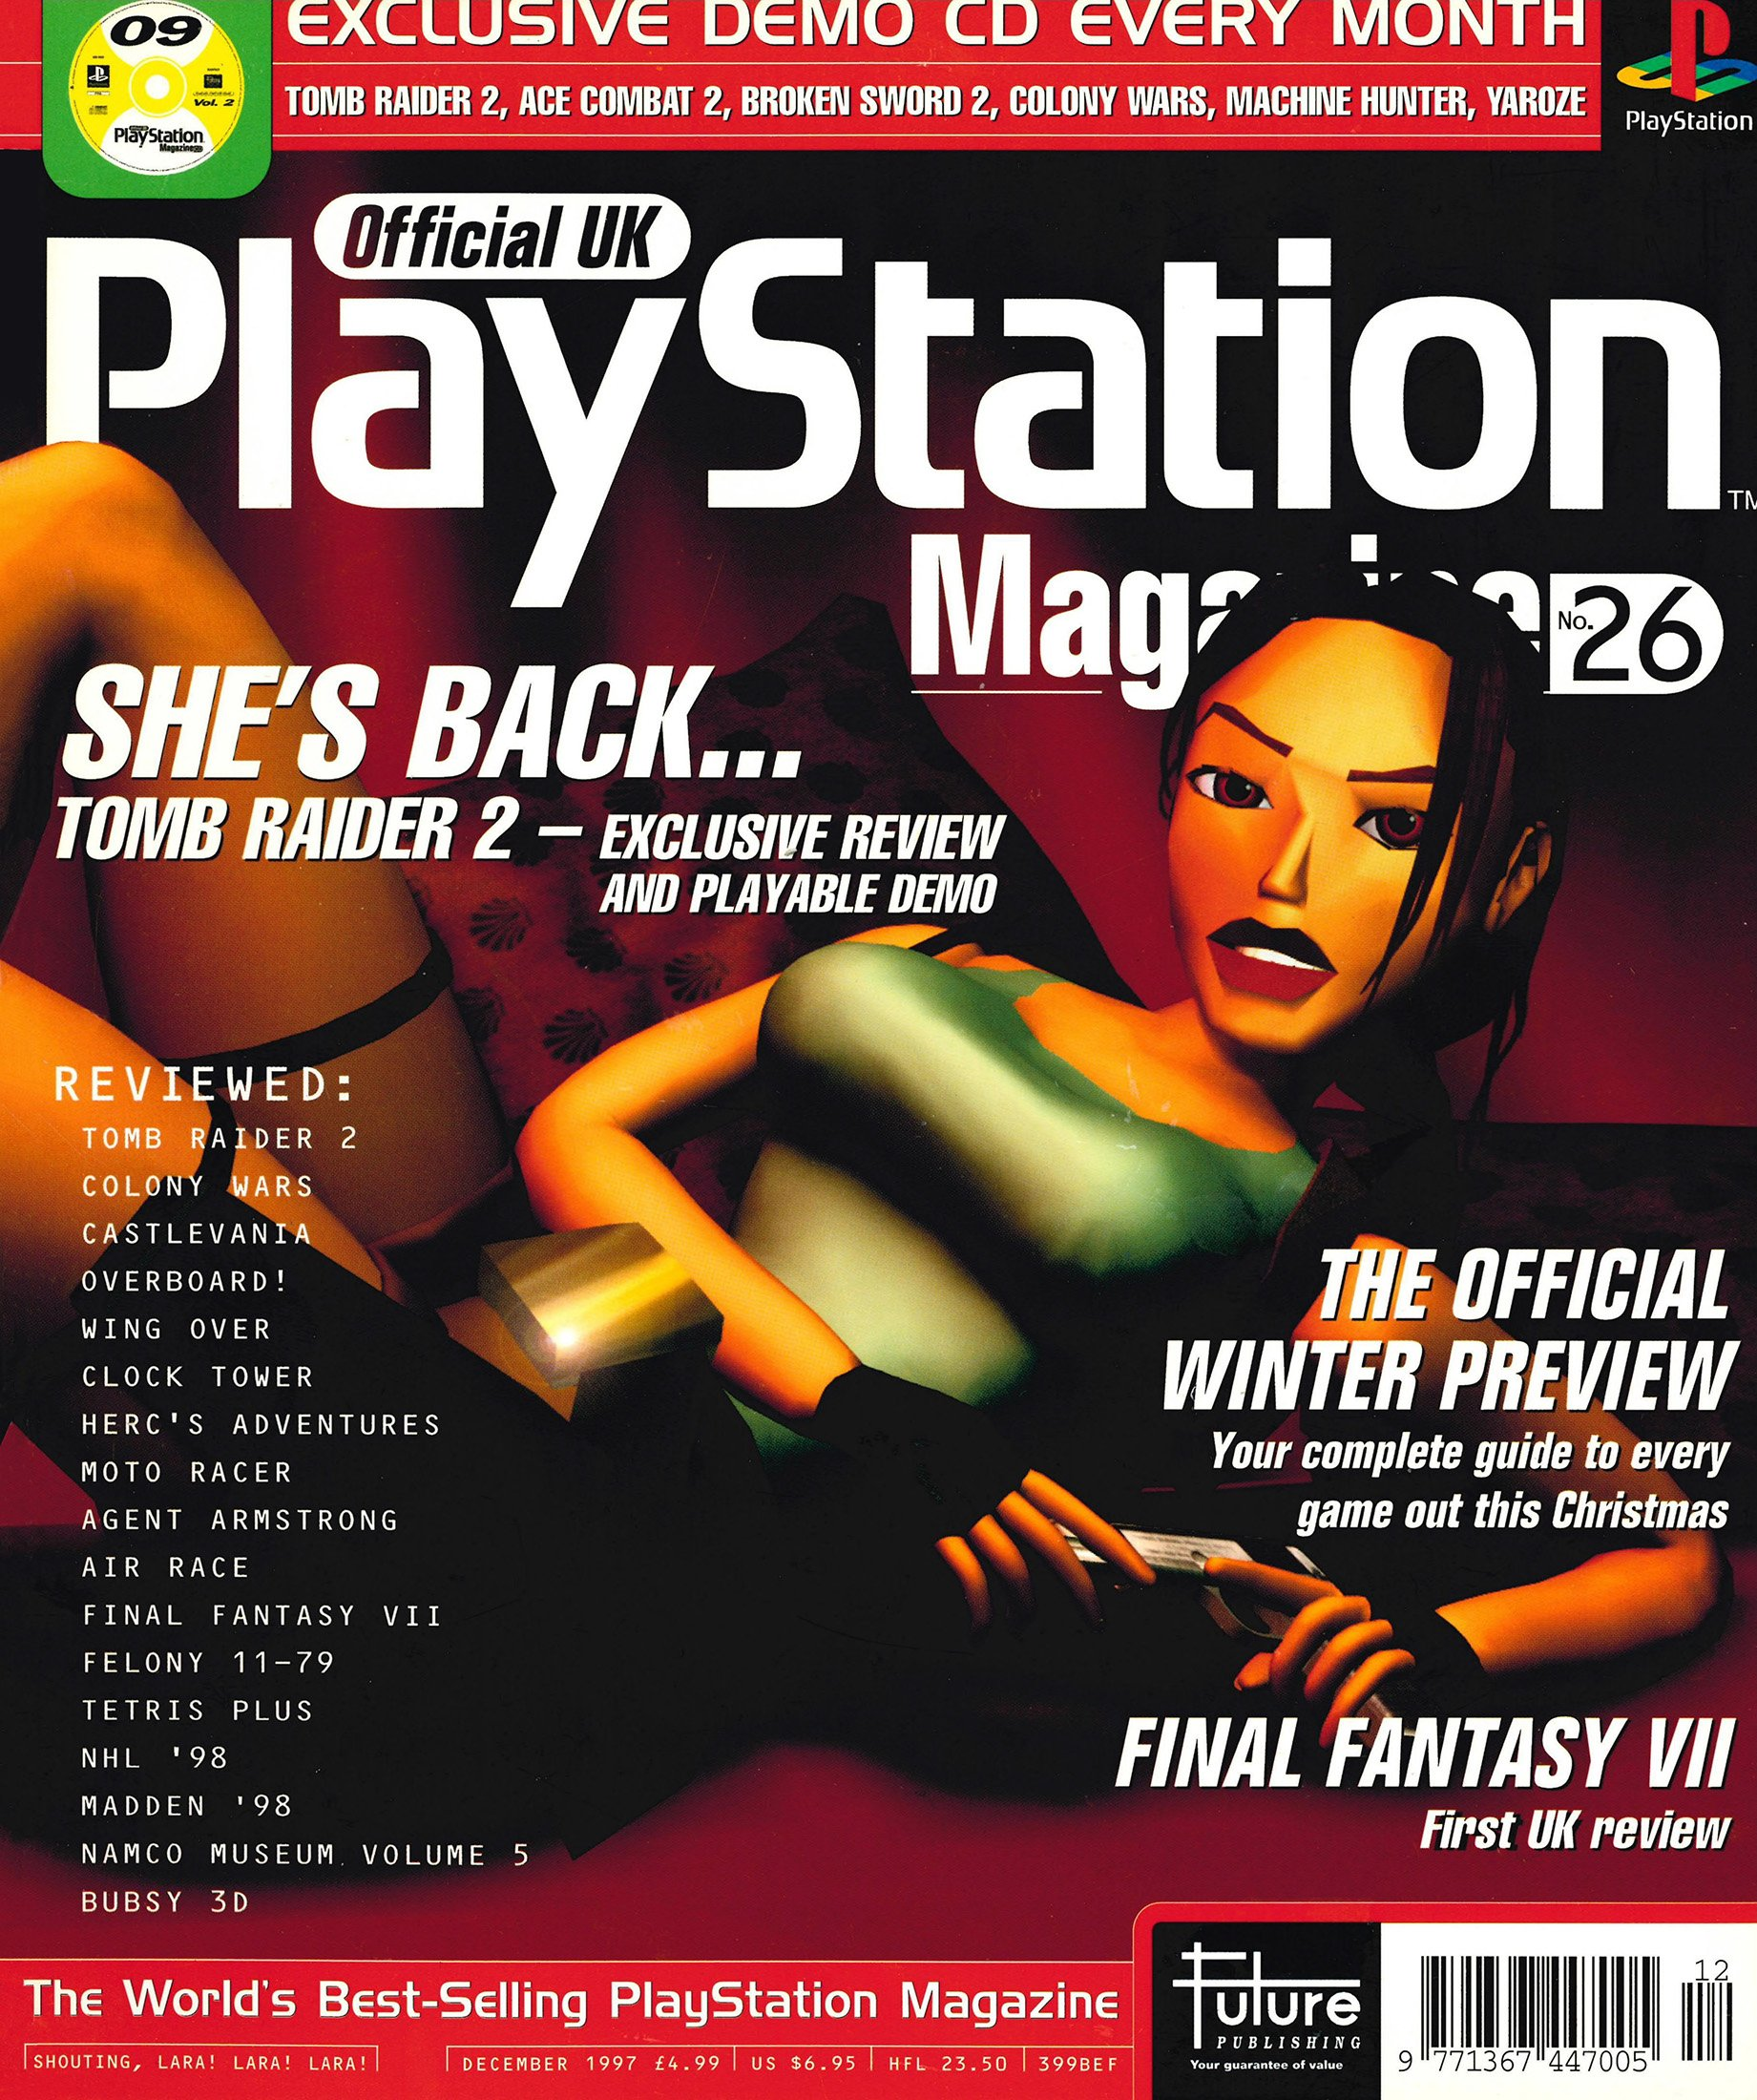 Official UK PlayStation Magazine Issue 026 (December 1997)